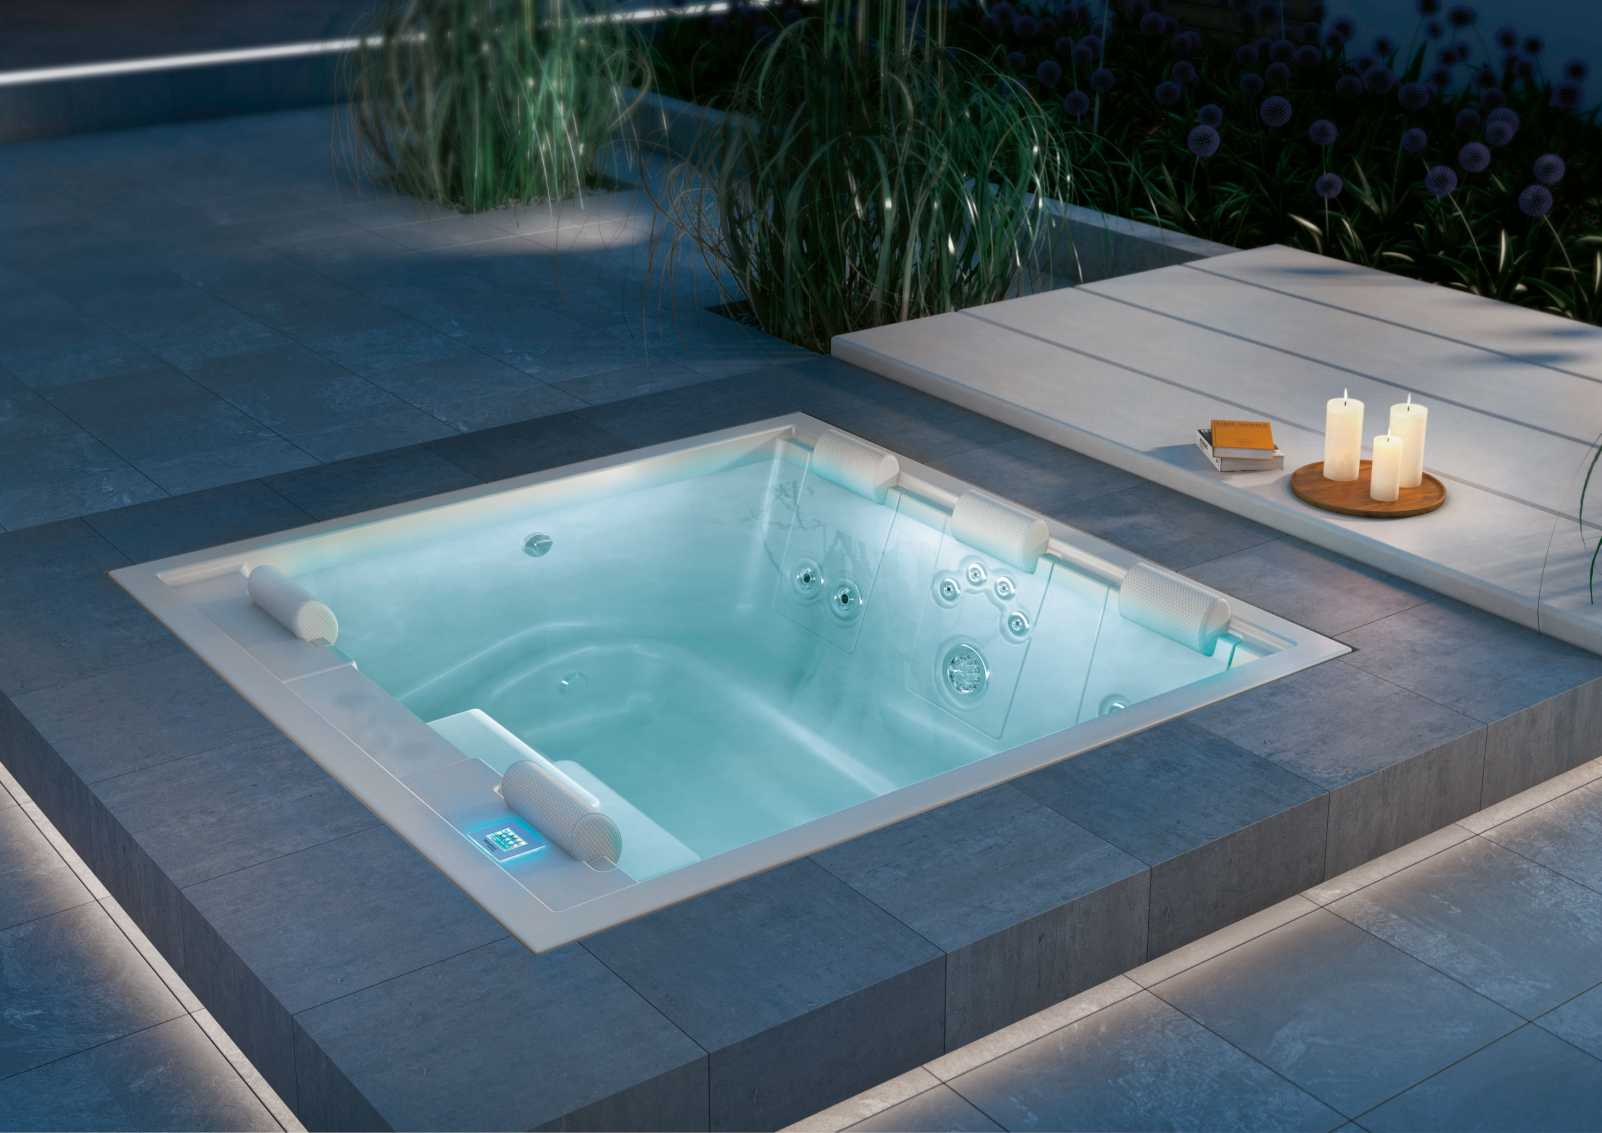 jacuzzi outdoor gebraucht fabulous whirlpool pure spa bubble massage with jacuzzi outdoor. Black Bedroom Furniture Sets. Home Design Ideas